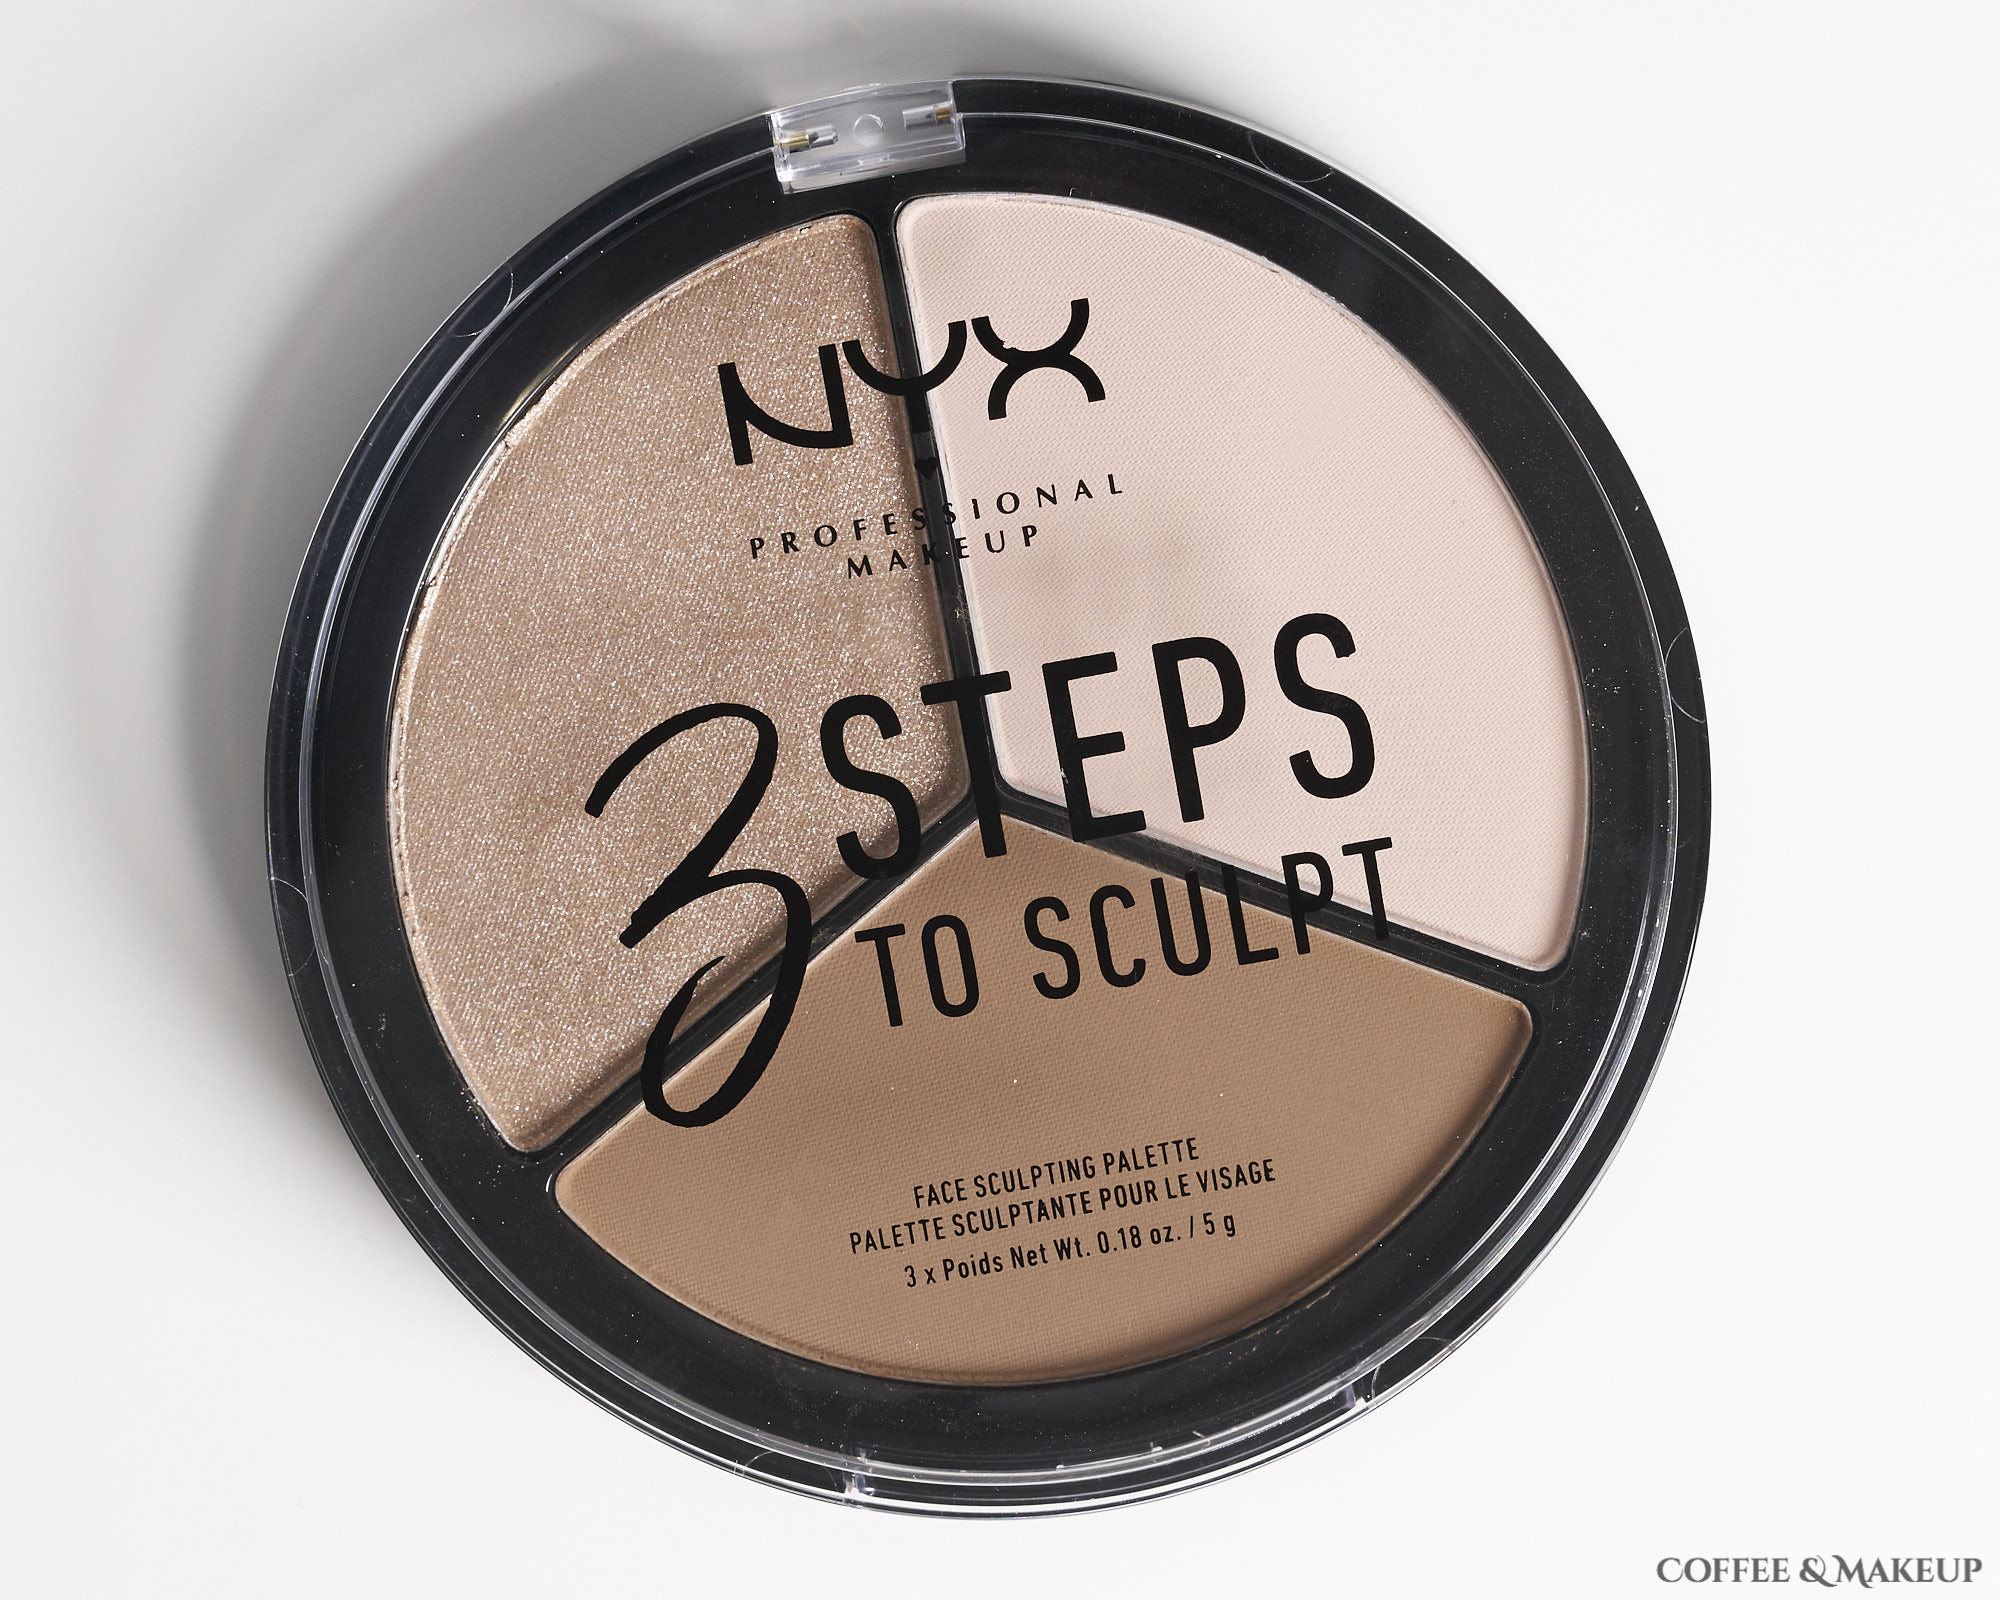 Fair | NYX 3 Steps To Sculpt